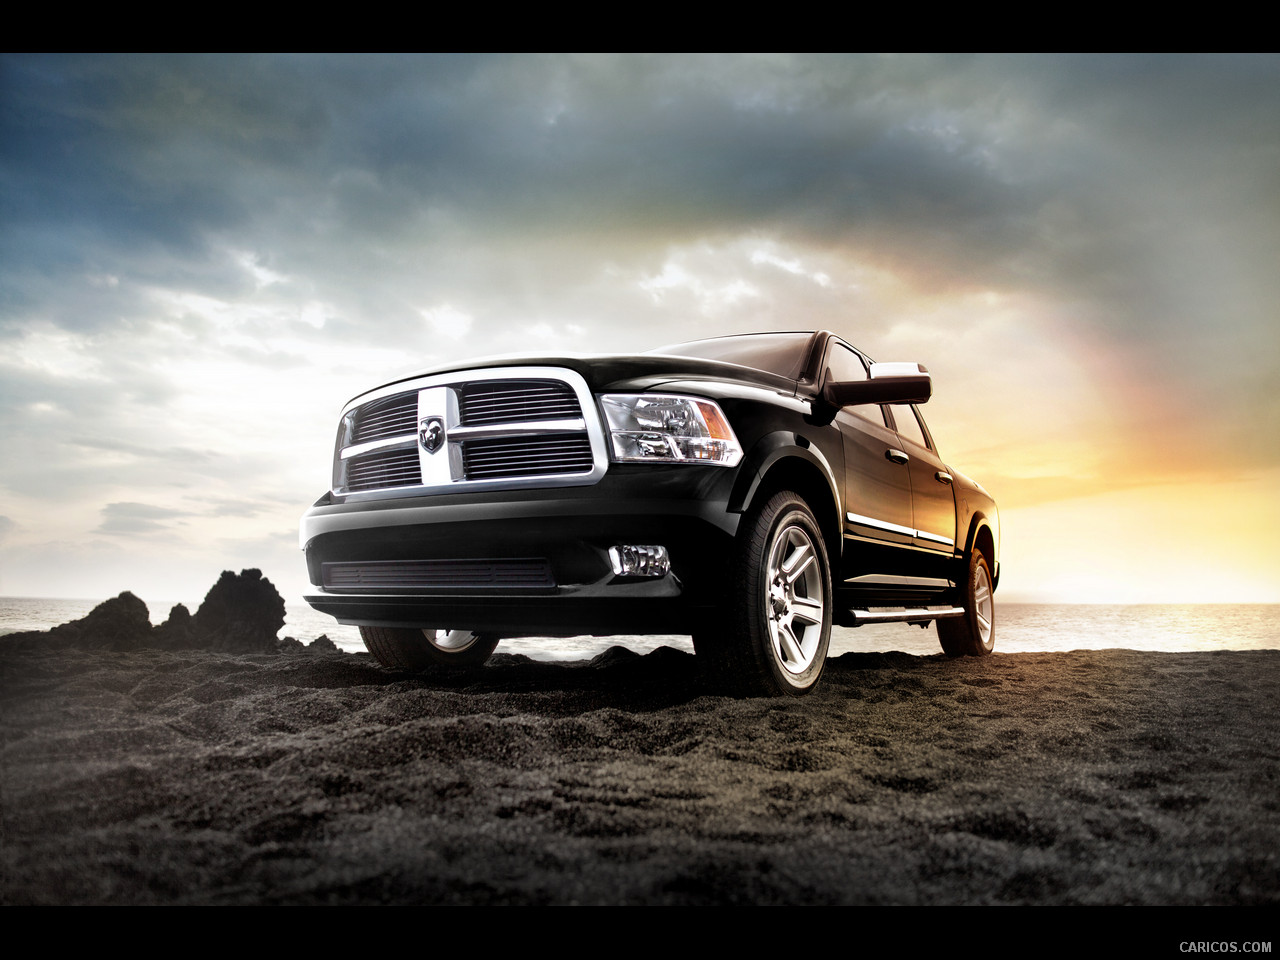 2012 Dodge Ram Laramie Limited - Front Wallpaper